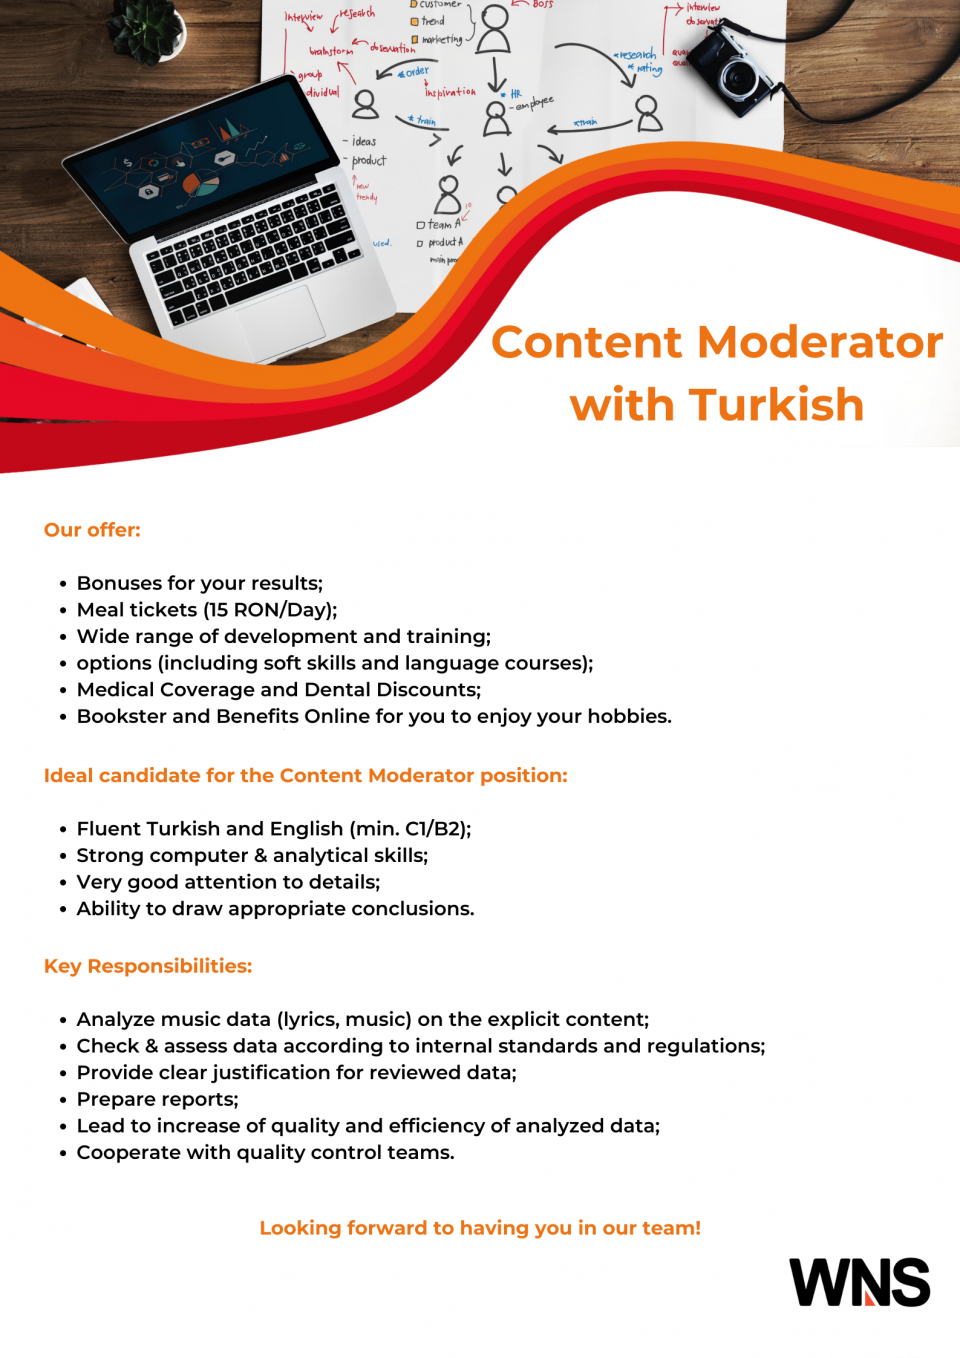 Ideal candidate for the Content Moderator position:    Fluent Turkish and English (min. C1/B2); Strong computer & analytical skills; Very good attention to details; Ability to draw appropriate conclusions  Key Responsibilities:    Analyze music data (lyrics, music) on the explicit content; Check & assess data according to internal standards and regulations; Provide clear justification for reviewed data; Prepare reports; Lead to increase of quality and efficiency of analyzed data; Cooperate with quality control teams.   Our offer:    Bonuses for your results; Meal tickets (15 RON/Day); Wide range of development and training options (including soft skills and language courses); Medical Coverage and Dental Discounts; Bookster and Benefits Online for you to enjoy your hobbies.  WNS Global Services is a recognized leader in business process outsourcing (BPO).We deliver value to our customers by bringing operational excellence, deep industry and functional knowledge to critical business processes. Our customers comes from various industries, such us: travel, insurance, financial services, healthcare, manufacturing, distribution and retail.We will welcome you in a global team and in a friendly work environment where you can professionally evolve. Looking forward meeting you!